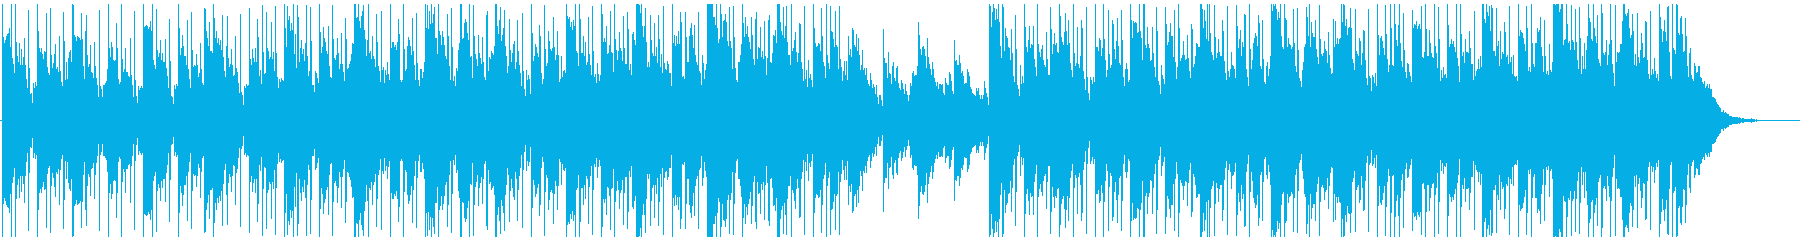 New Age BGM's reproduced waveform